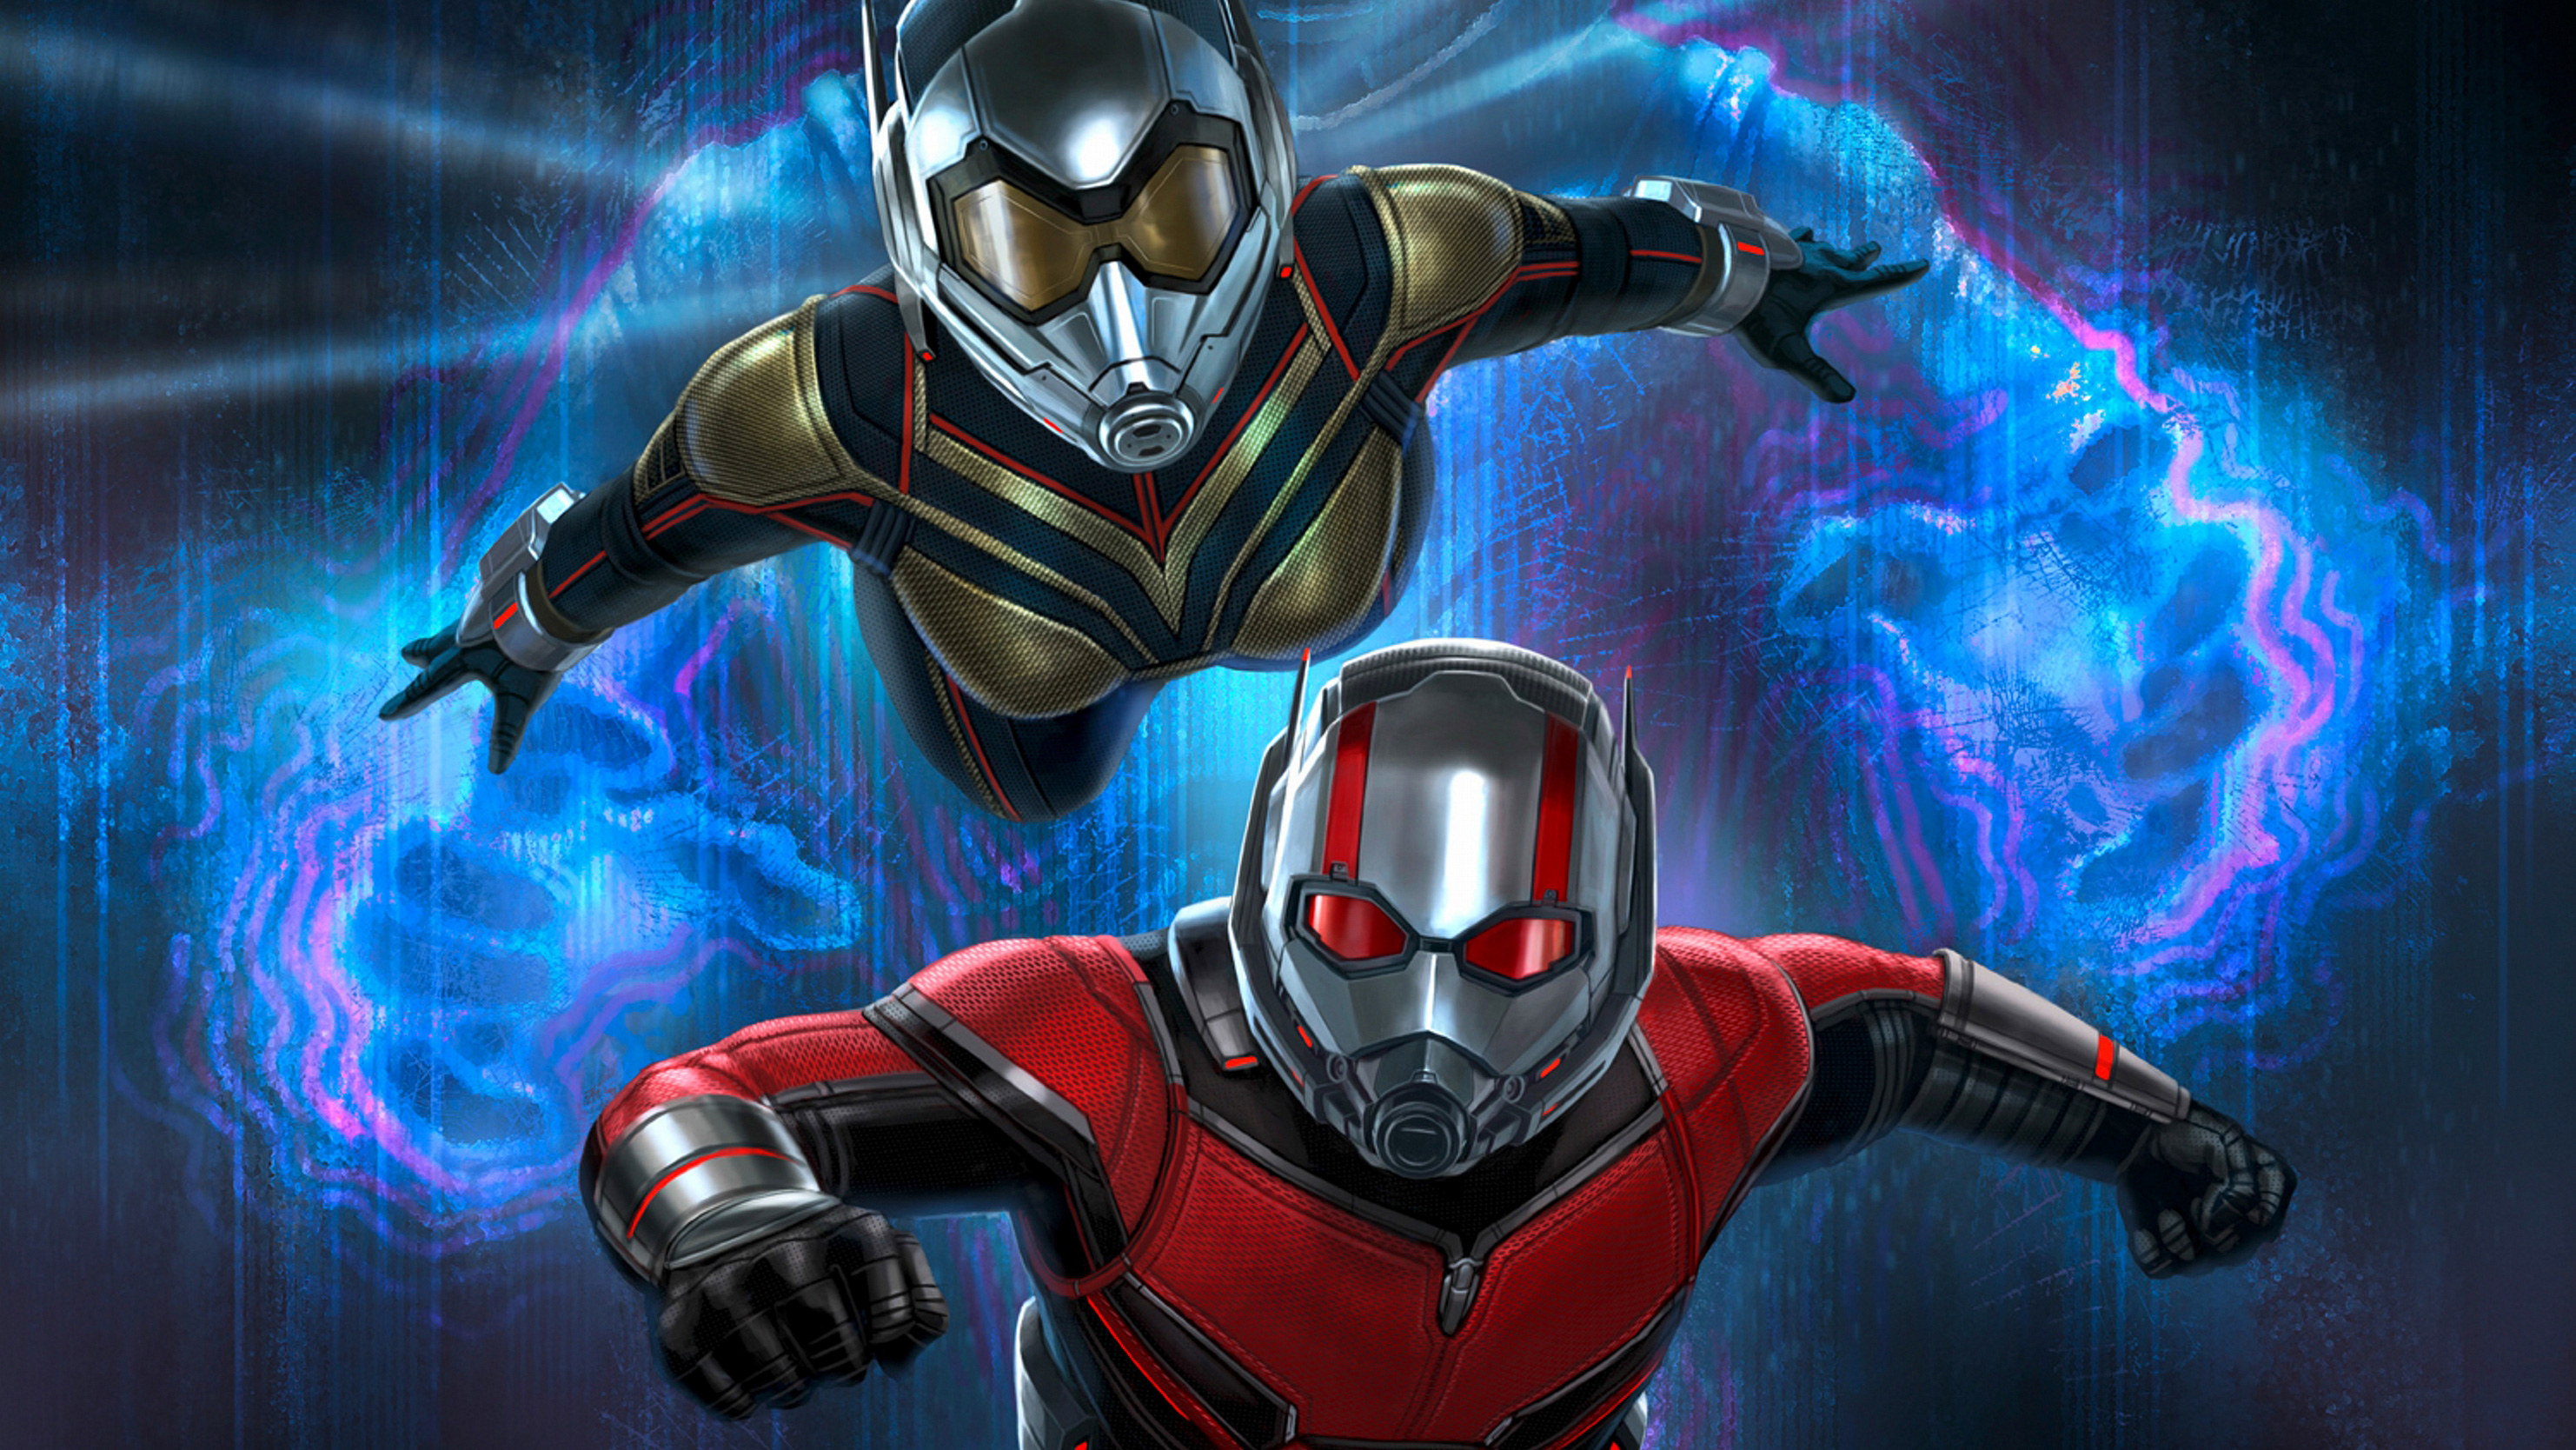 Ant Man And The Wasp Wallpaper: Ant Man And The Wasp Empire Magazine, HD Movies, 4k